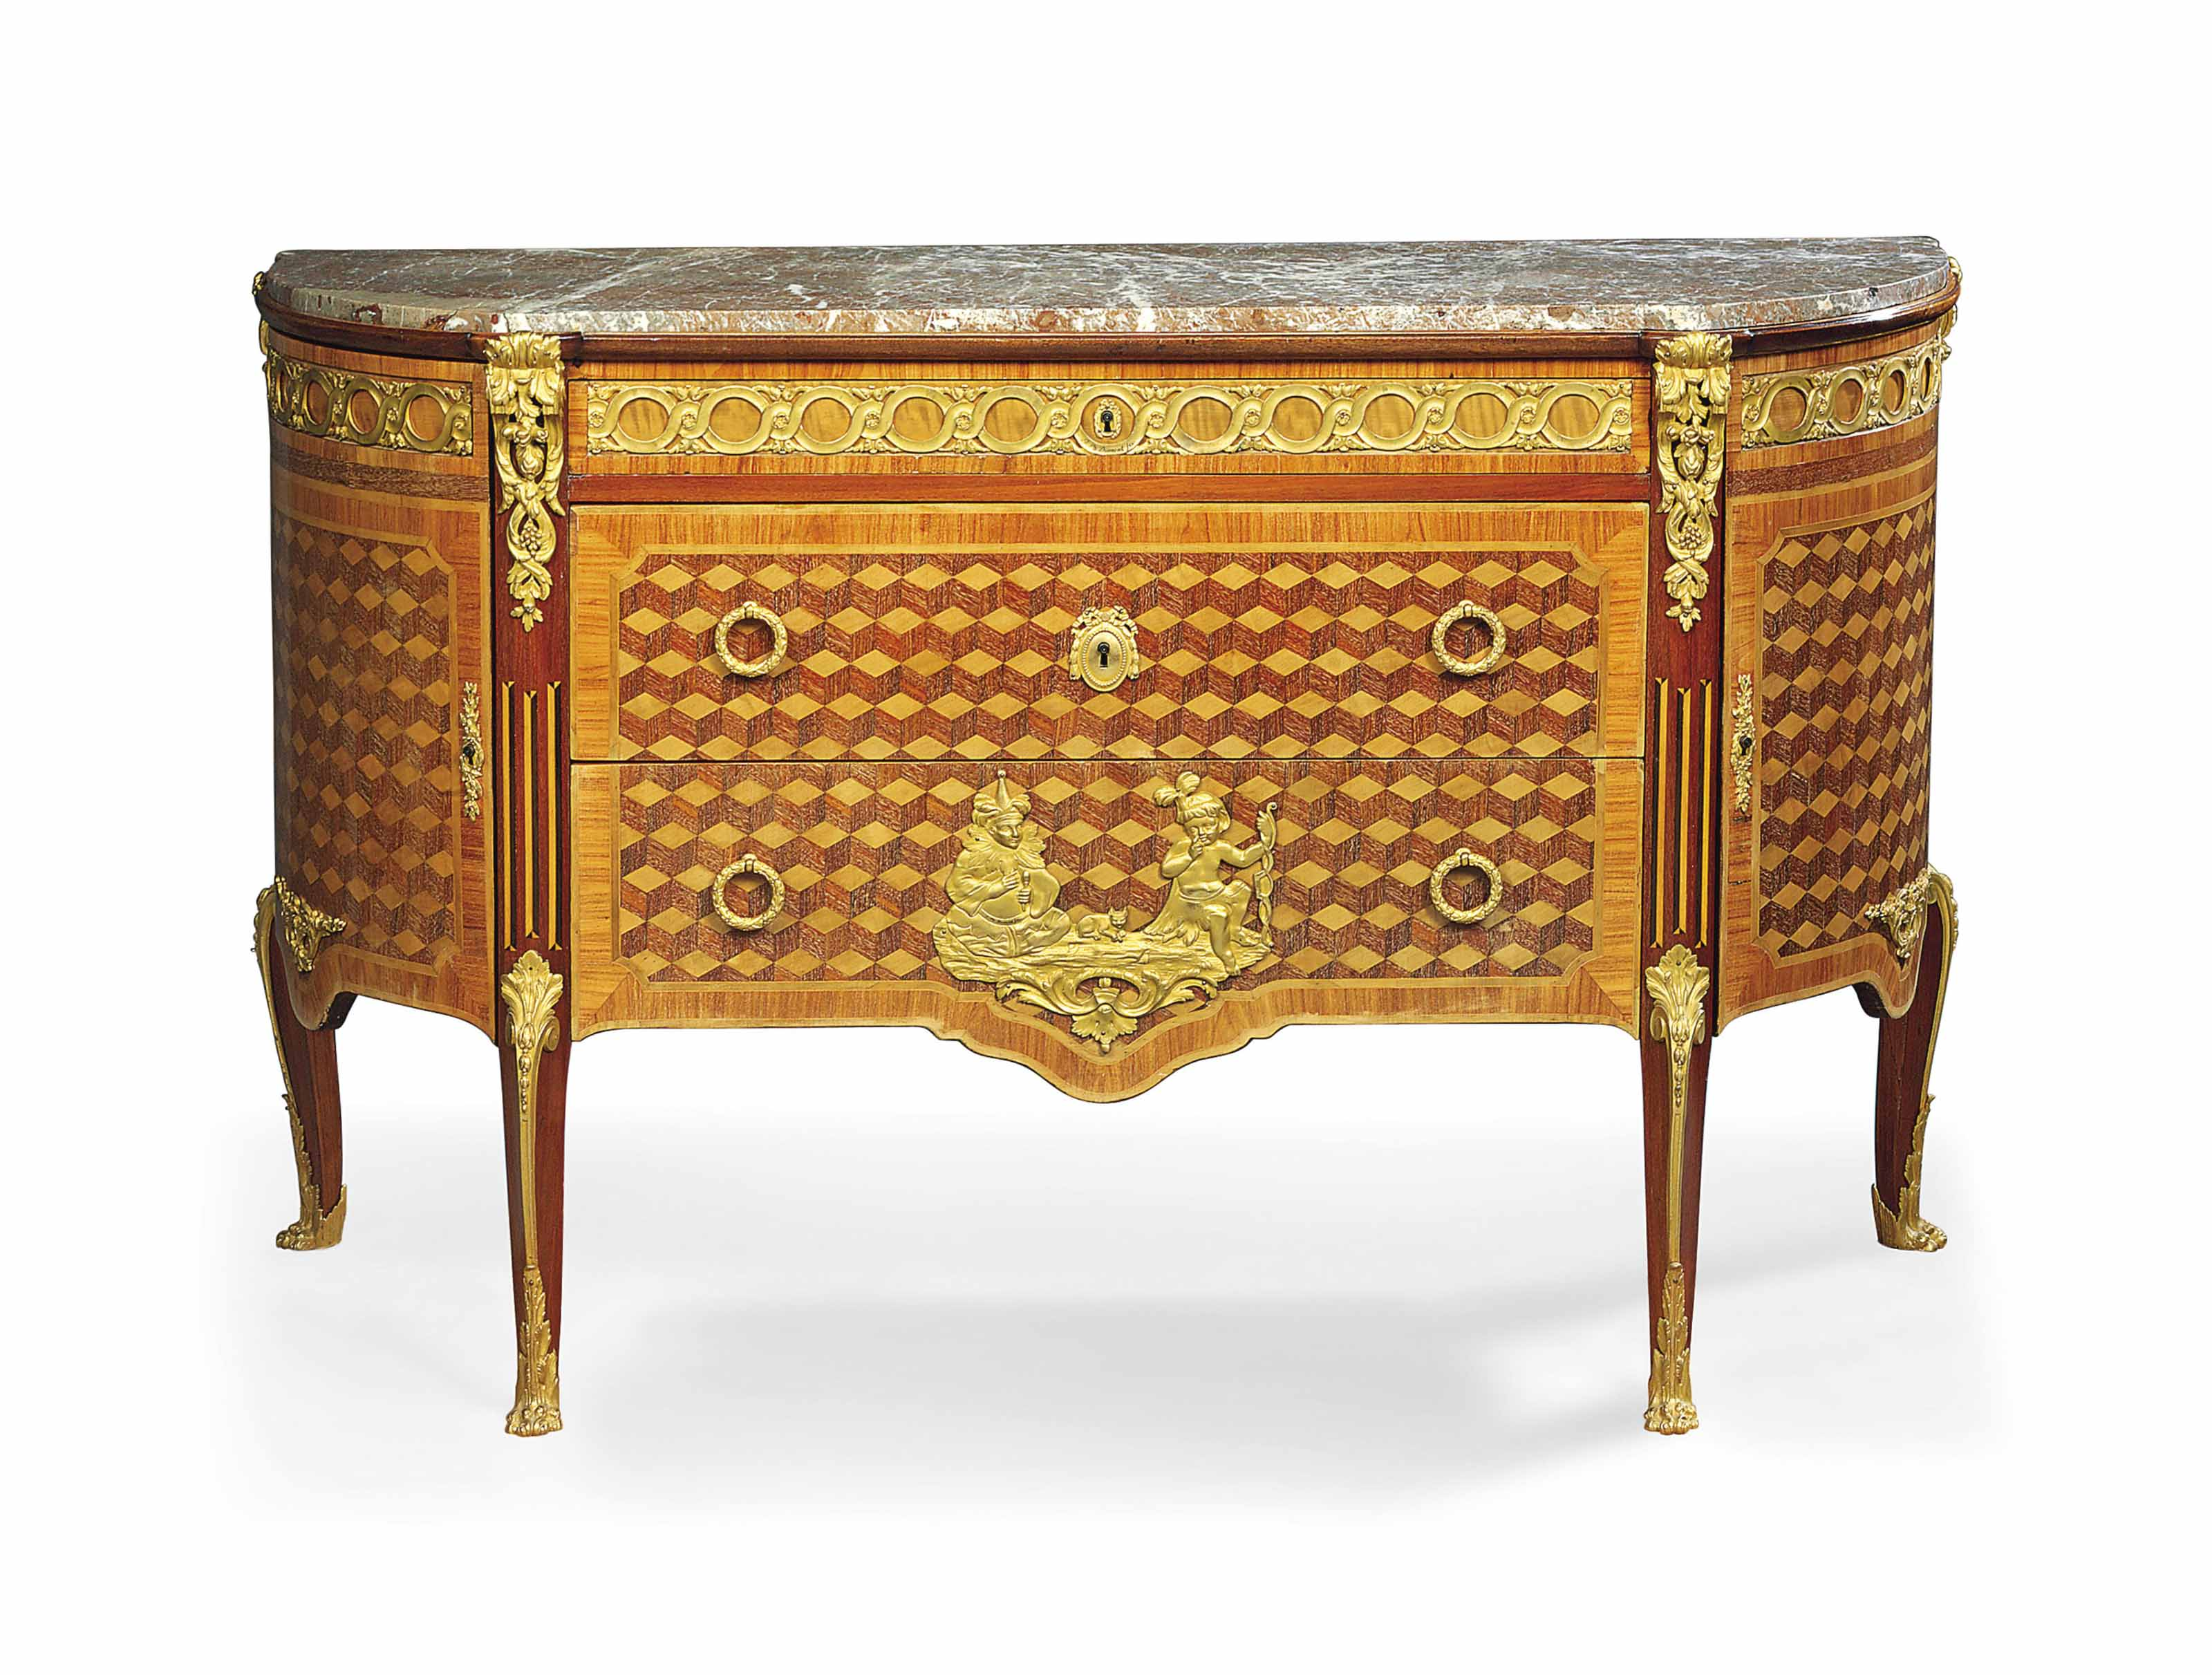 A FRENCH ORMOLU-MOUNTED AMARANTH, TULIPWOOD AND PARQUETRY COMMODE